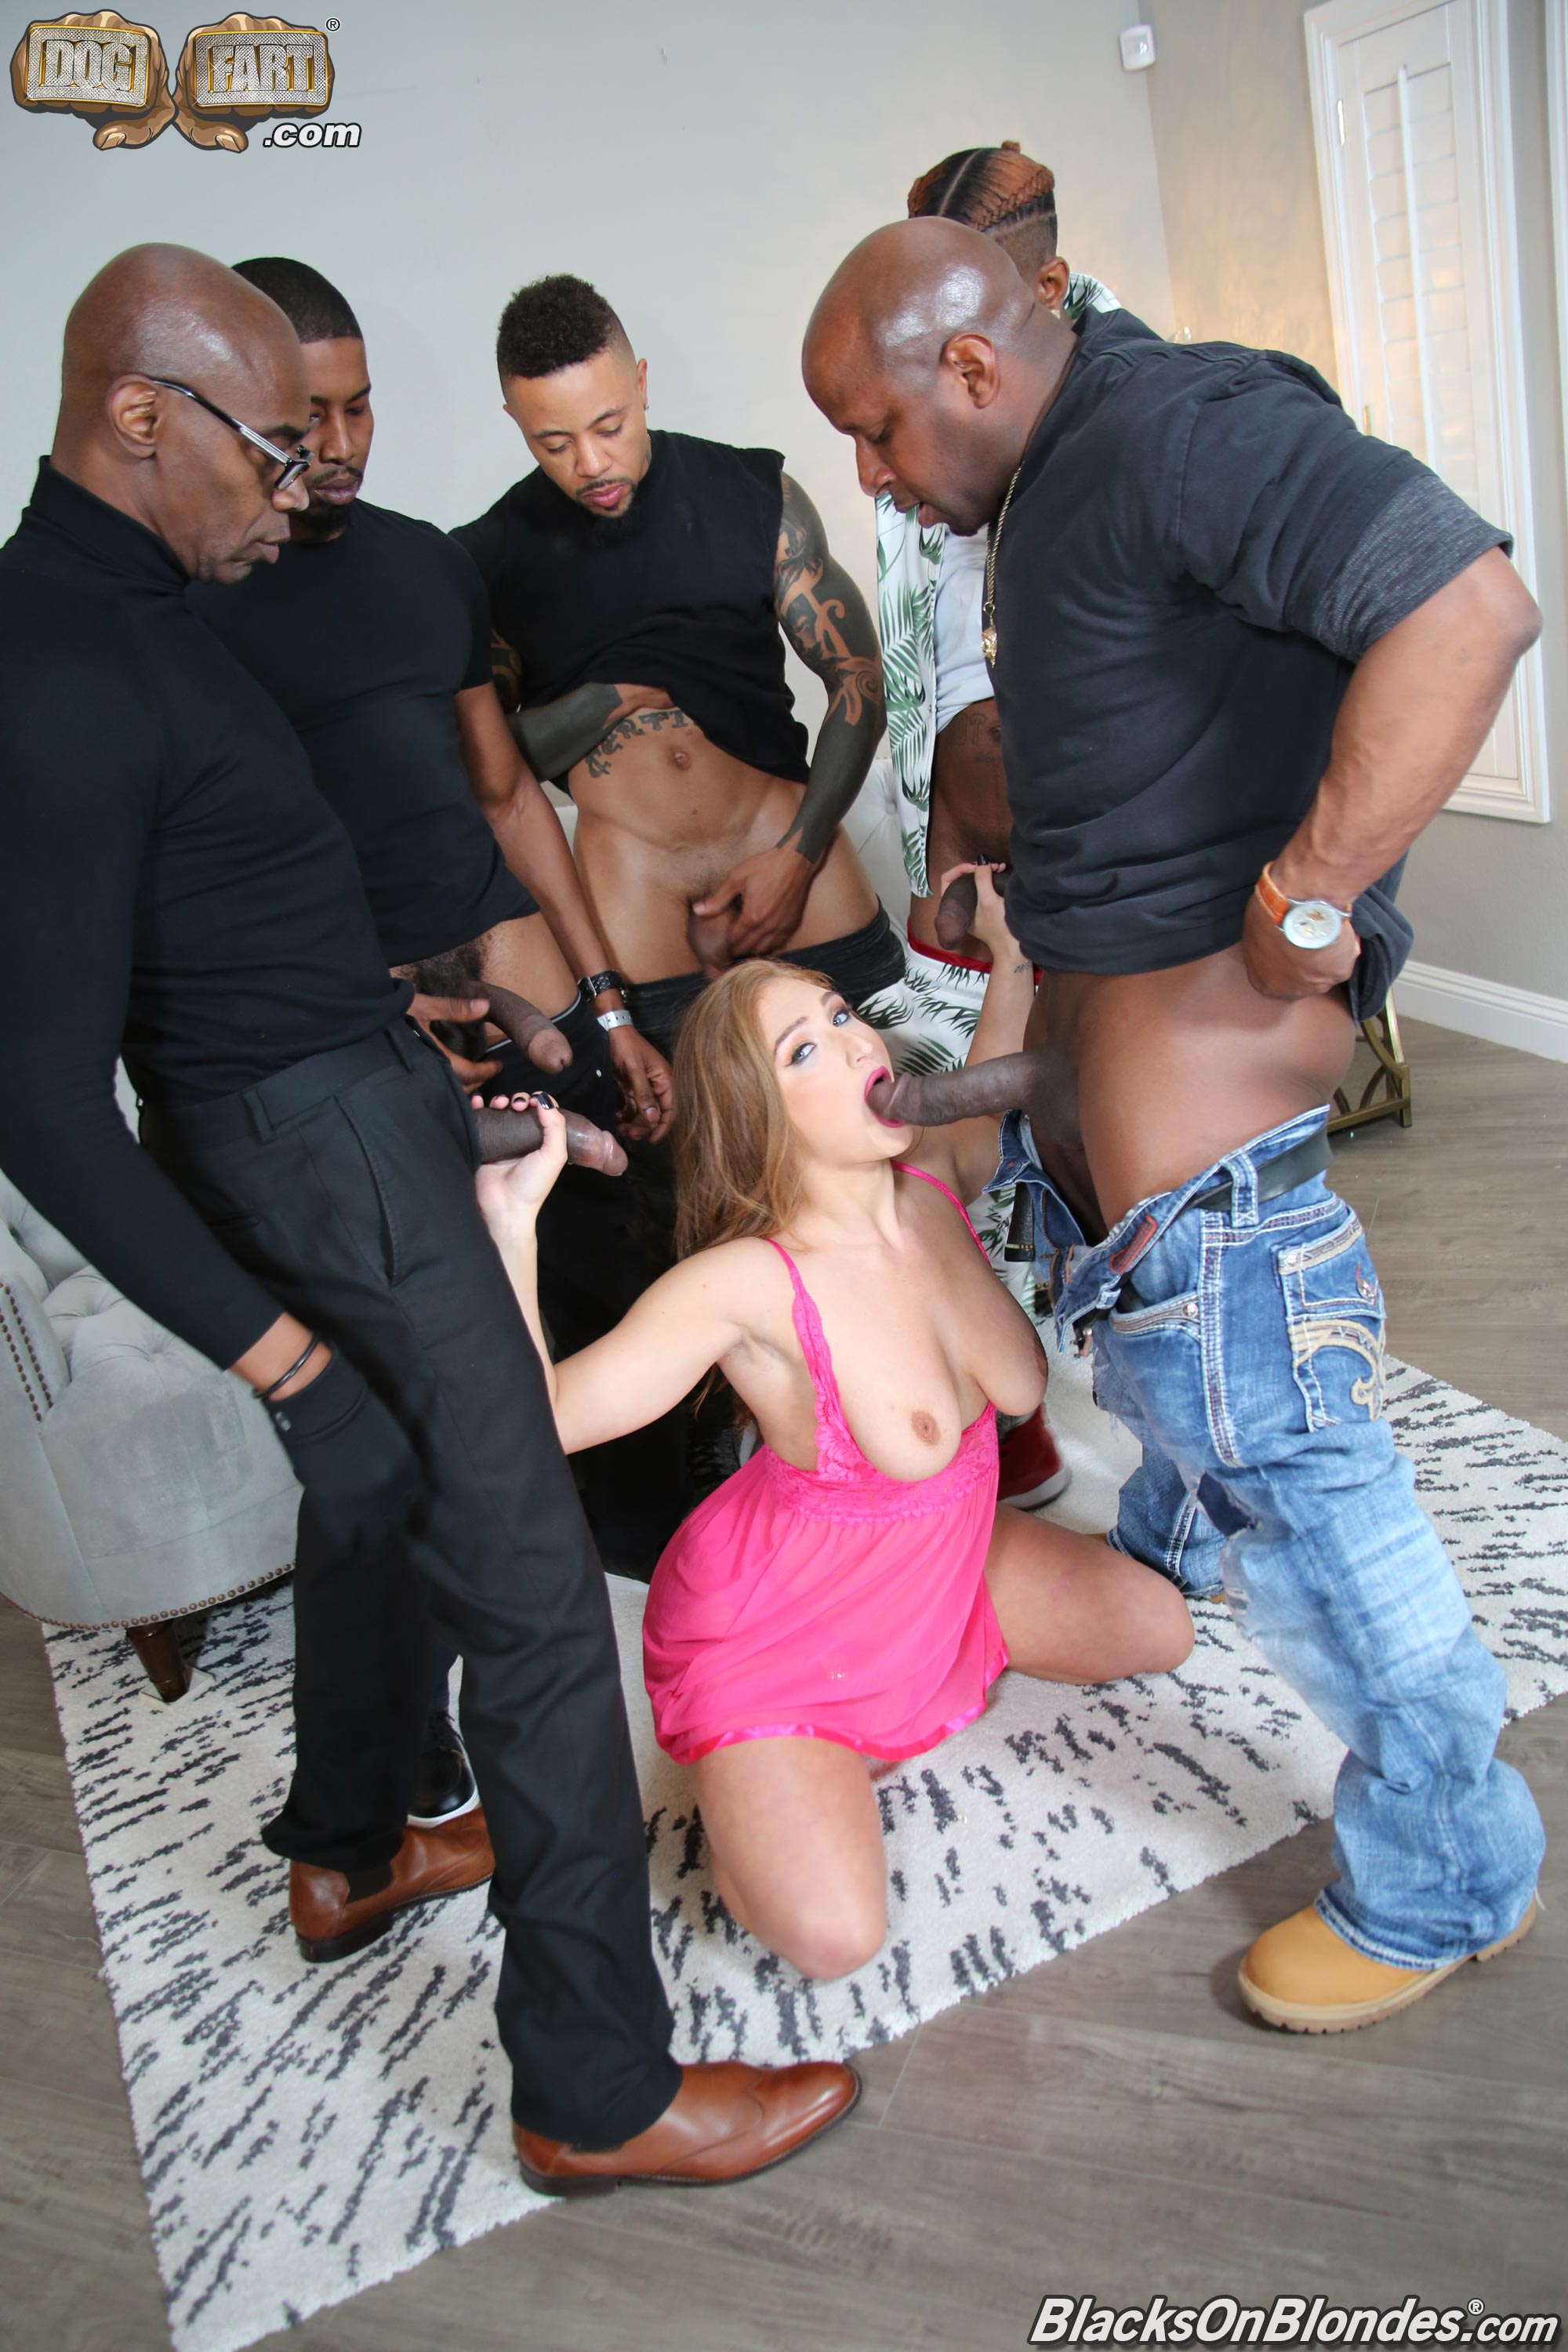 Dogfart 'Skylar Snow - Blacks On Blondes' starring Skylar Snow (photo 9)